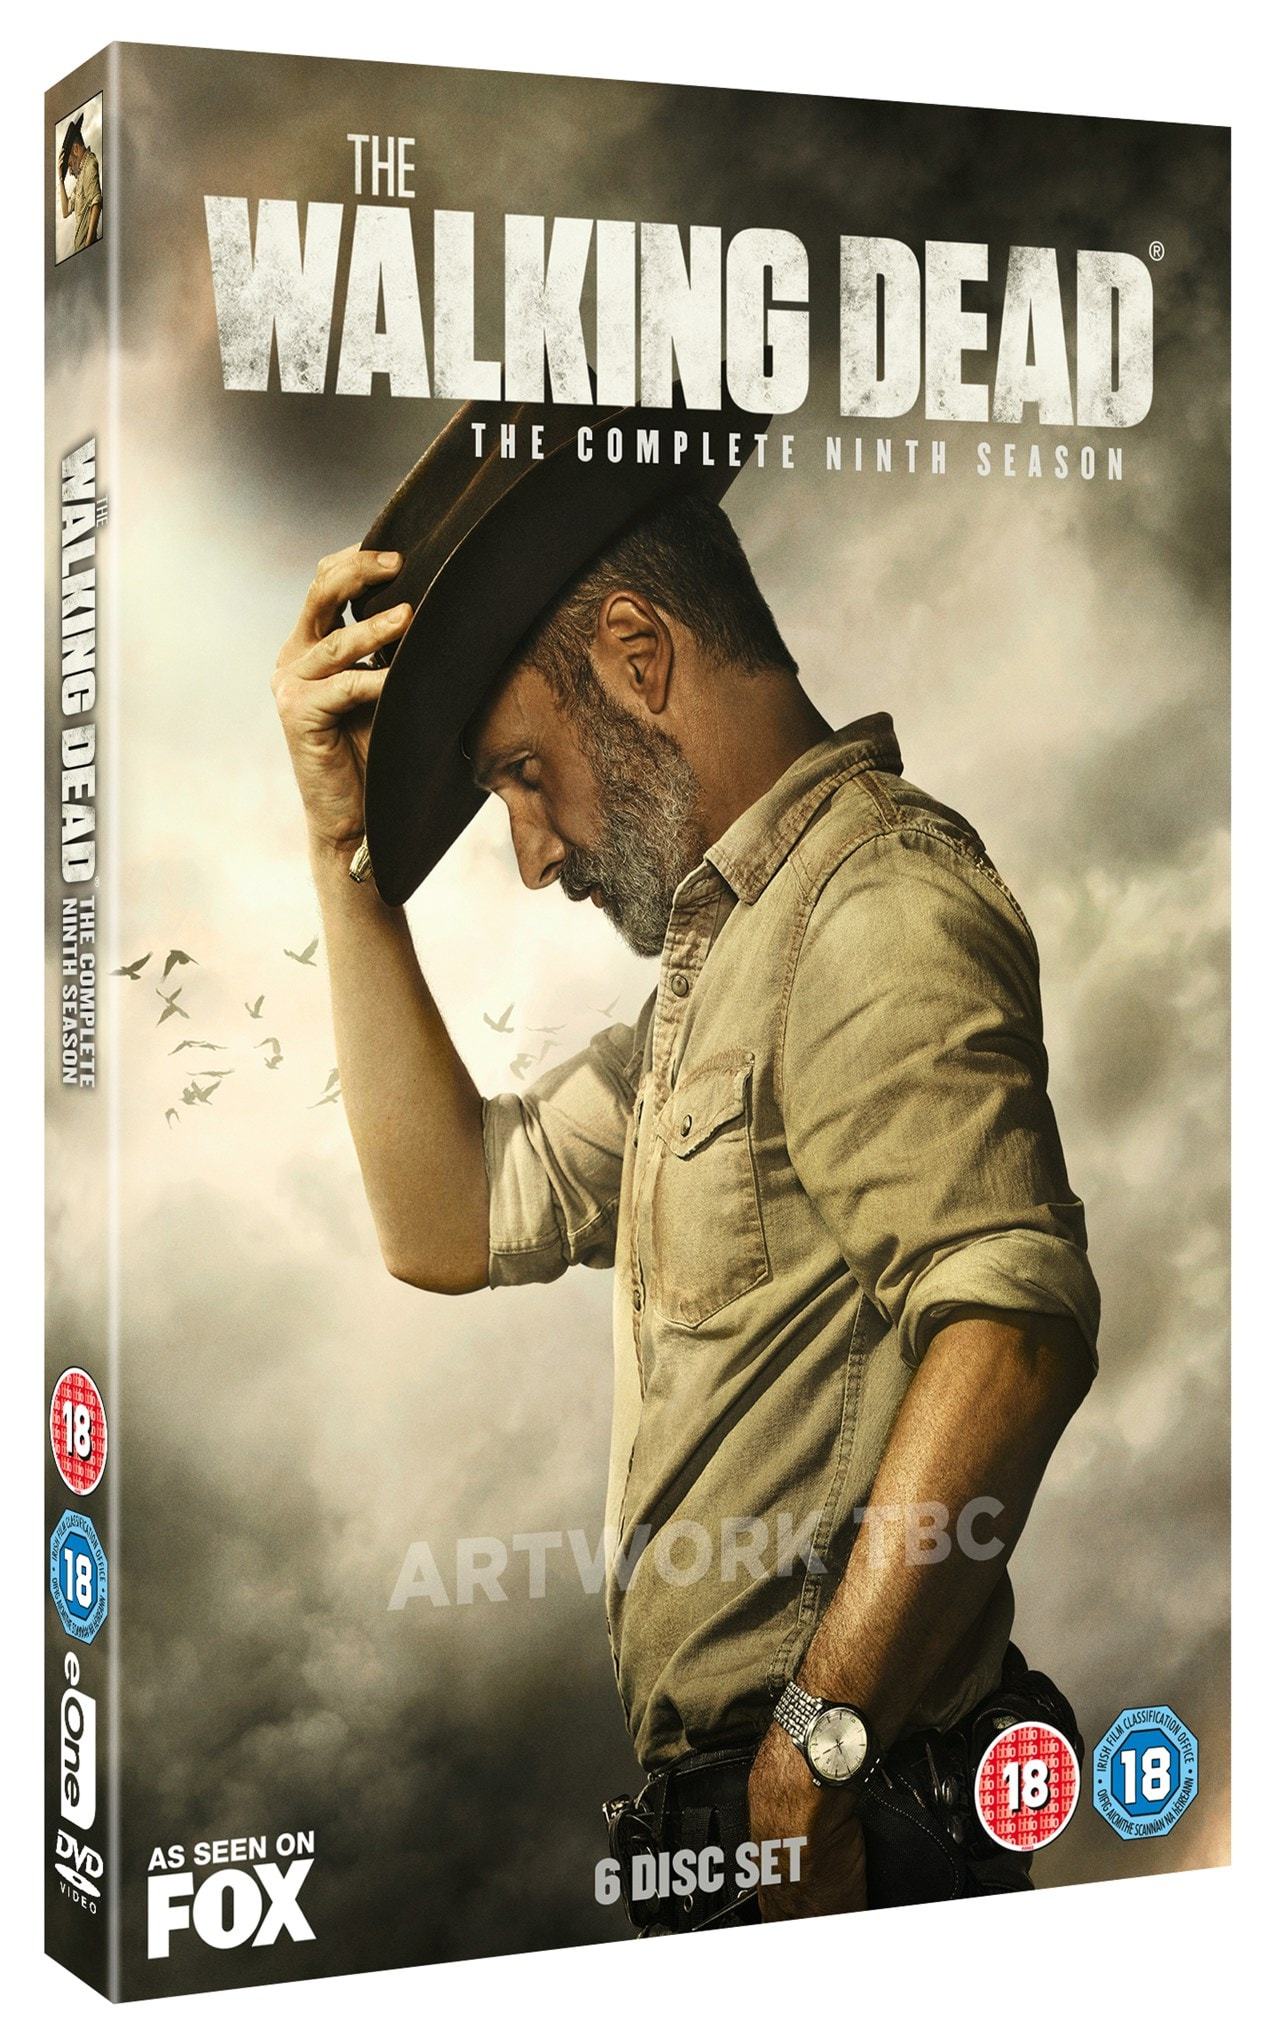 The Walking Dead: The Complete Ninth Season - 2